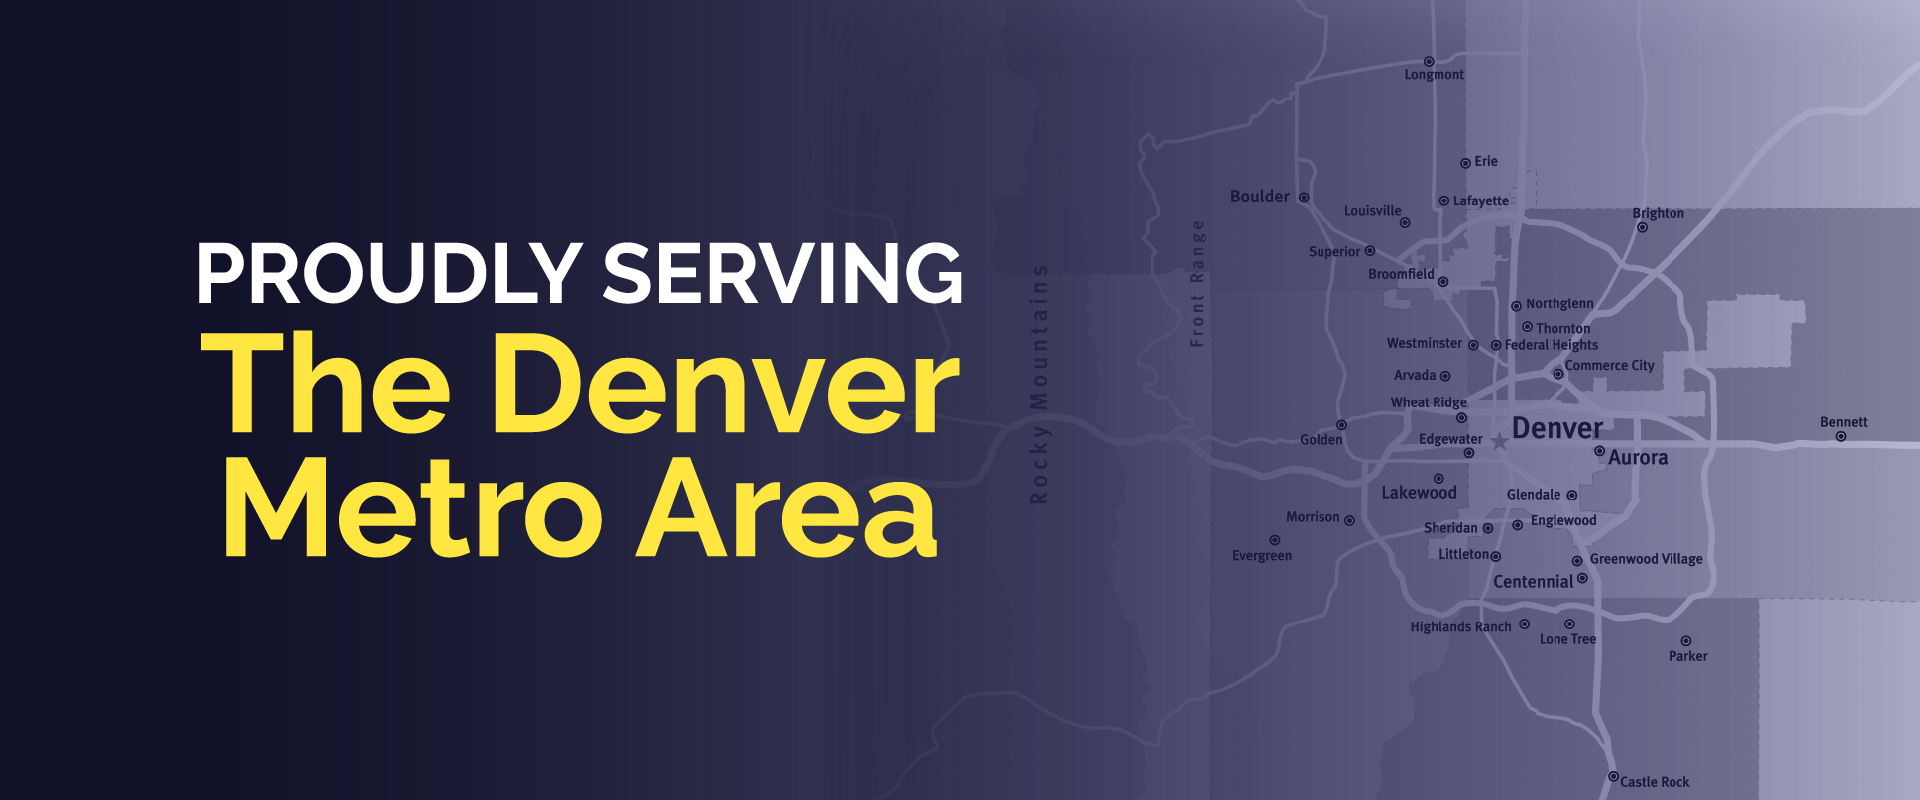 UHC Denver metro area service map